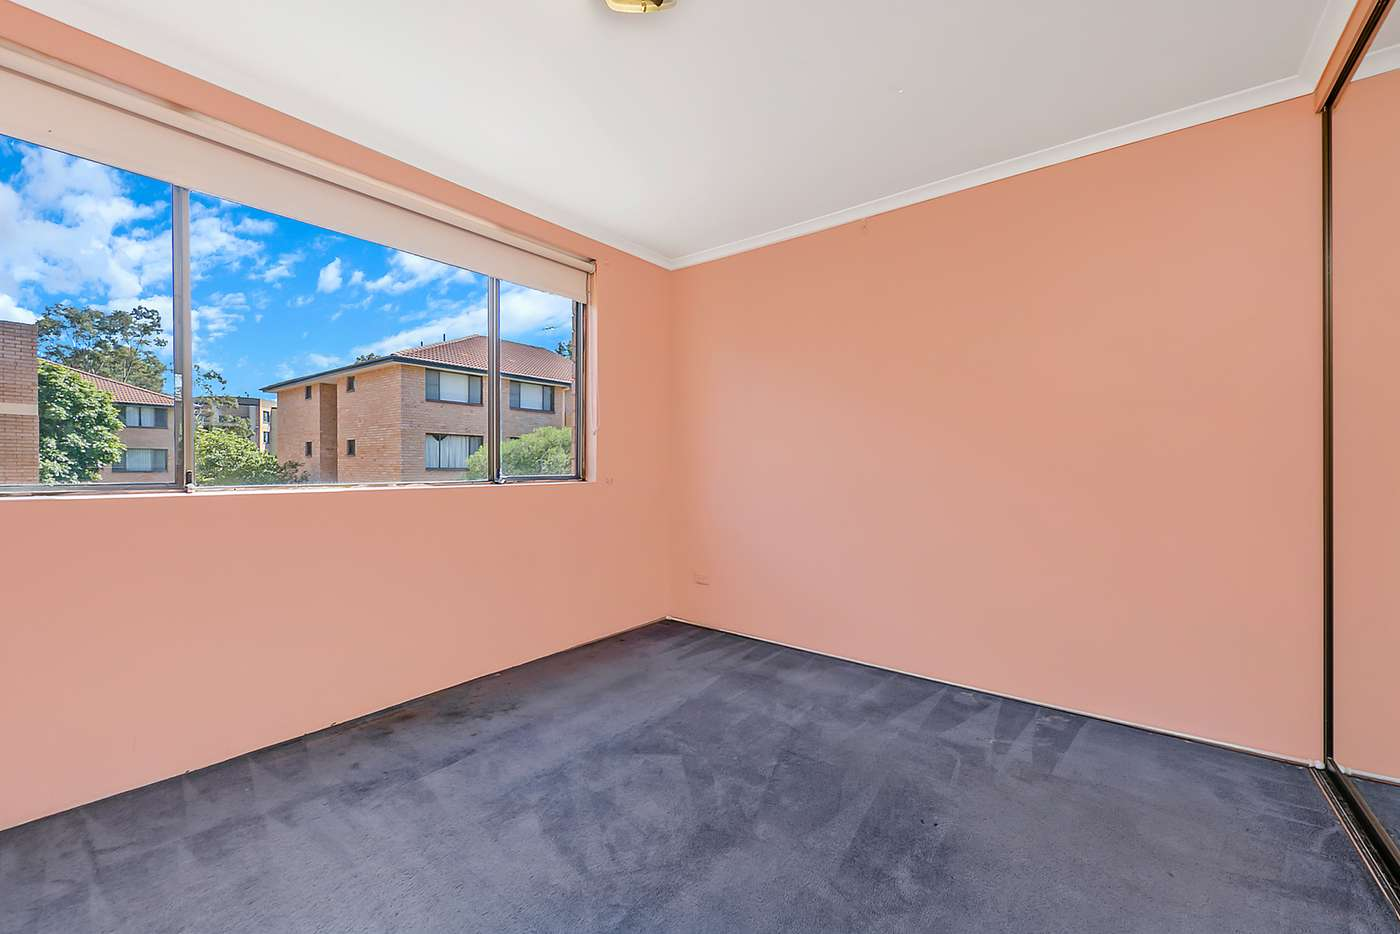 Sixth view of Homely apartment listing, 32/7 Griffiths Street, Blacktown NSW 2148